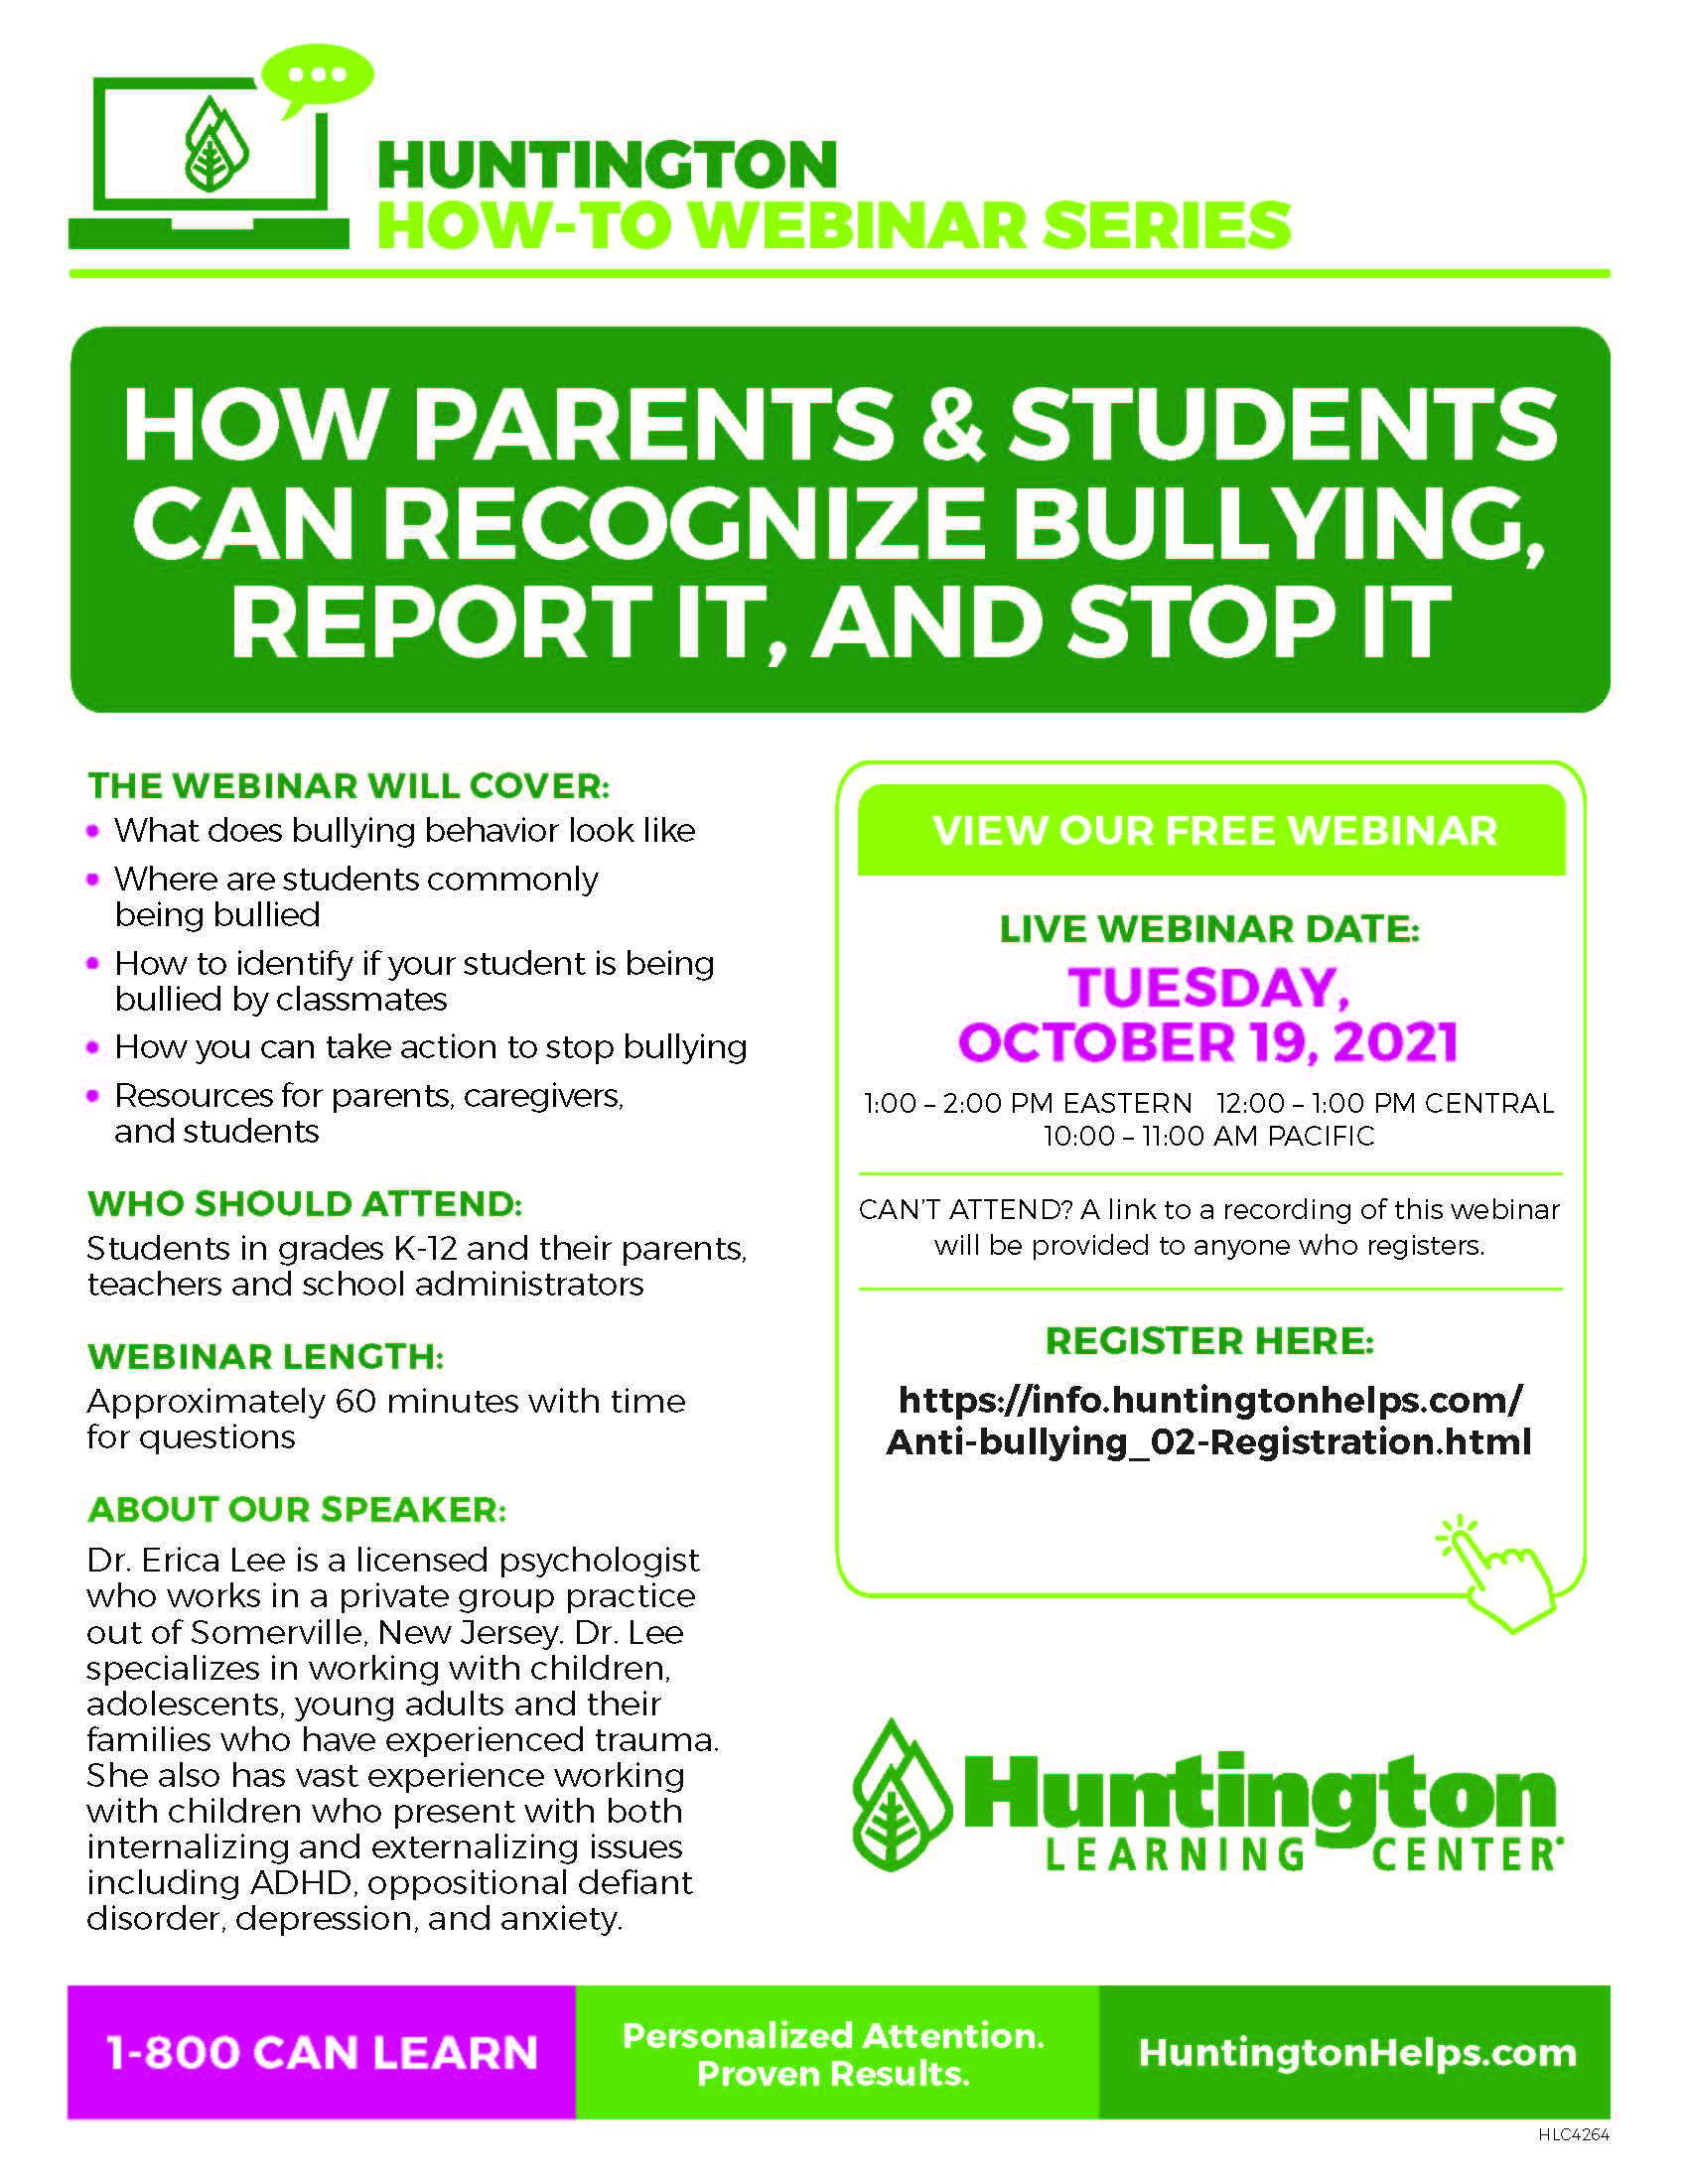 How Parents & Students Can Recognize Bullying, Report It, and Stop It at Huntington Learning Center